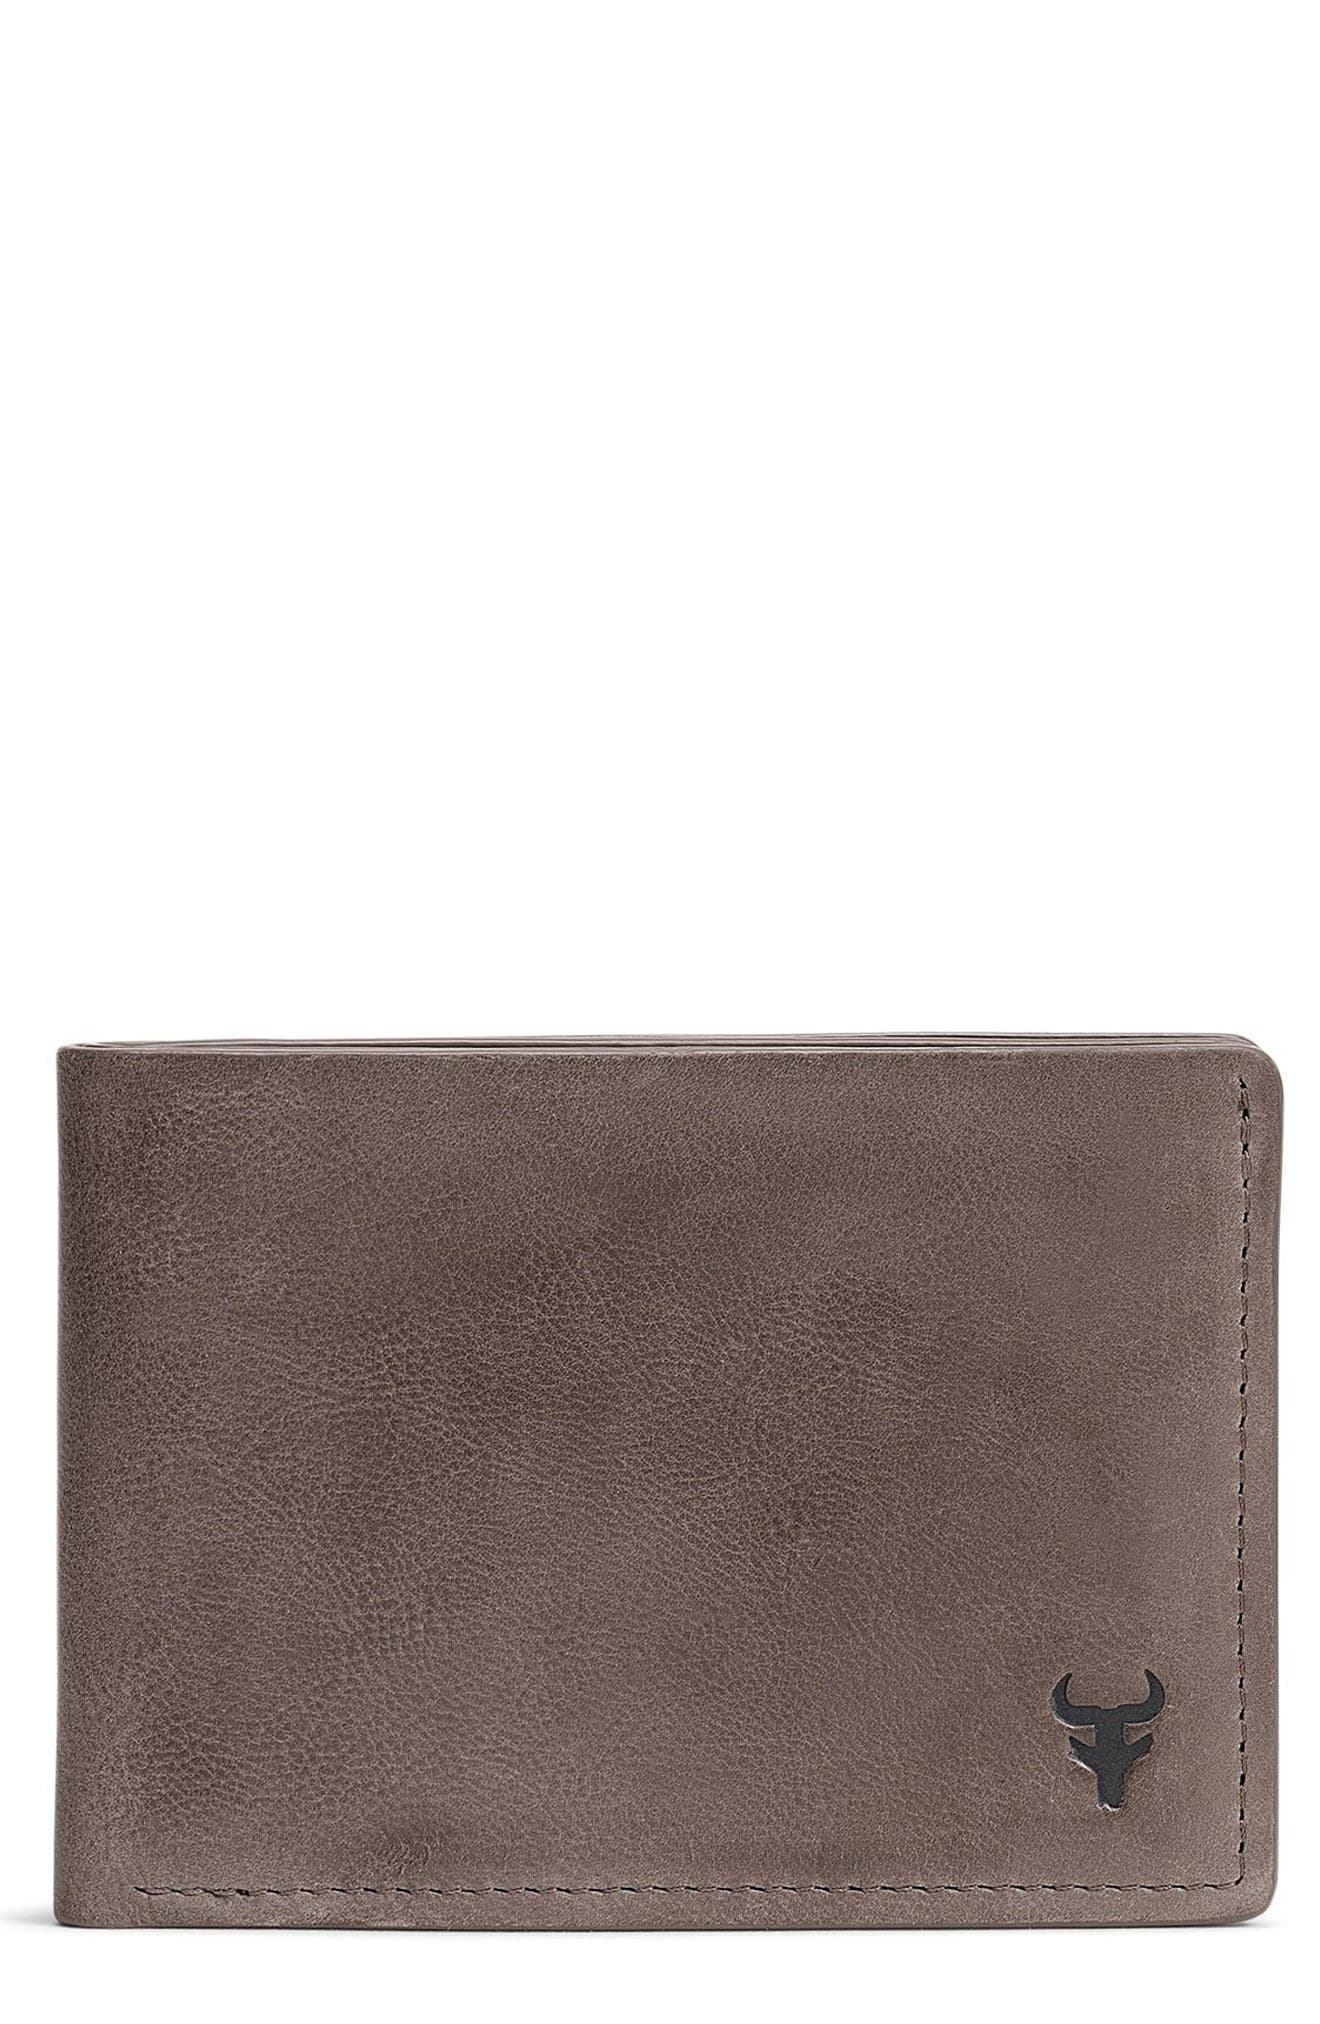 Canyon Super Slim Leather Wallet,                         Main,                         color, GREY